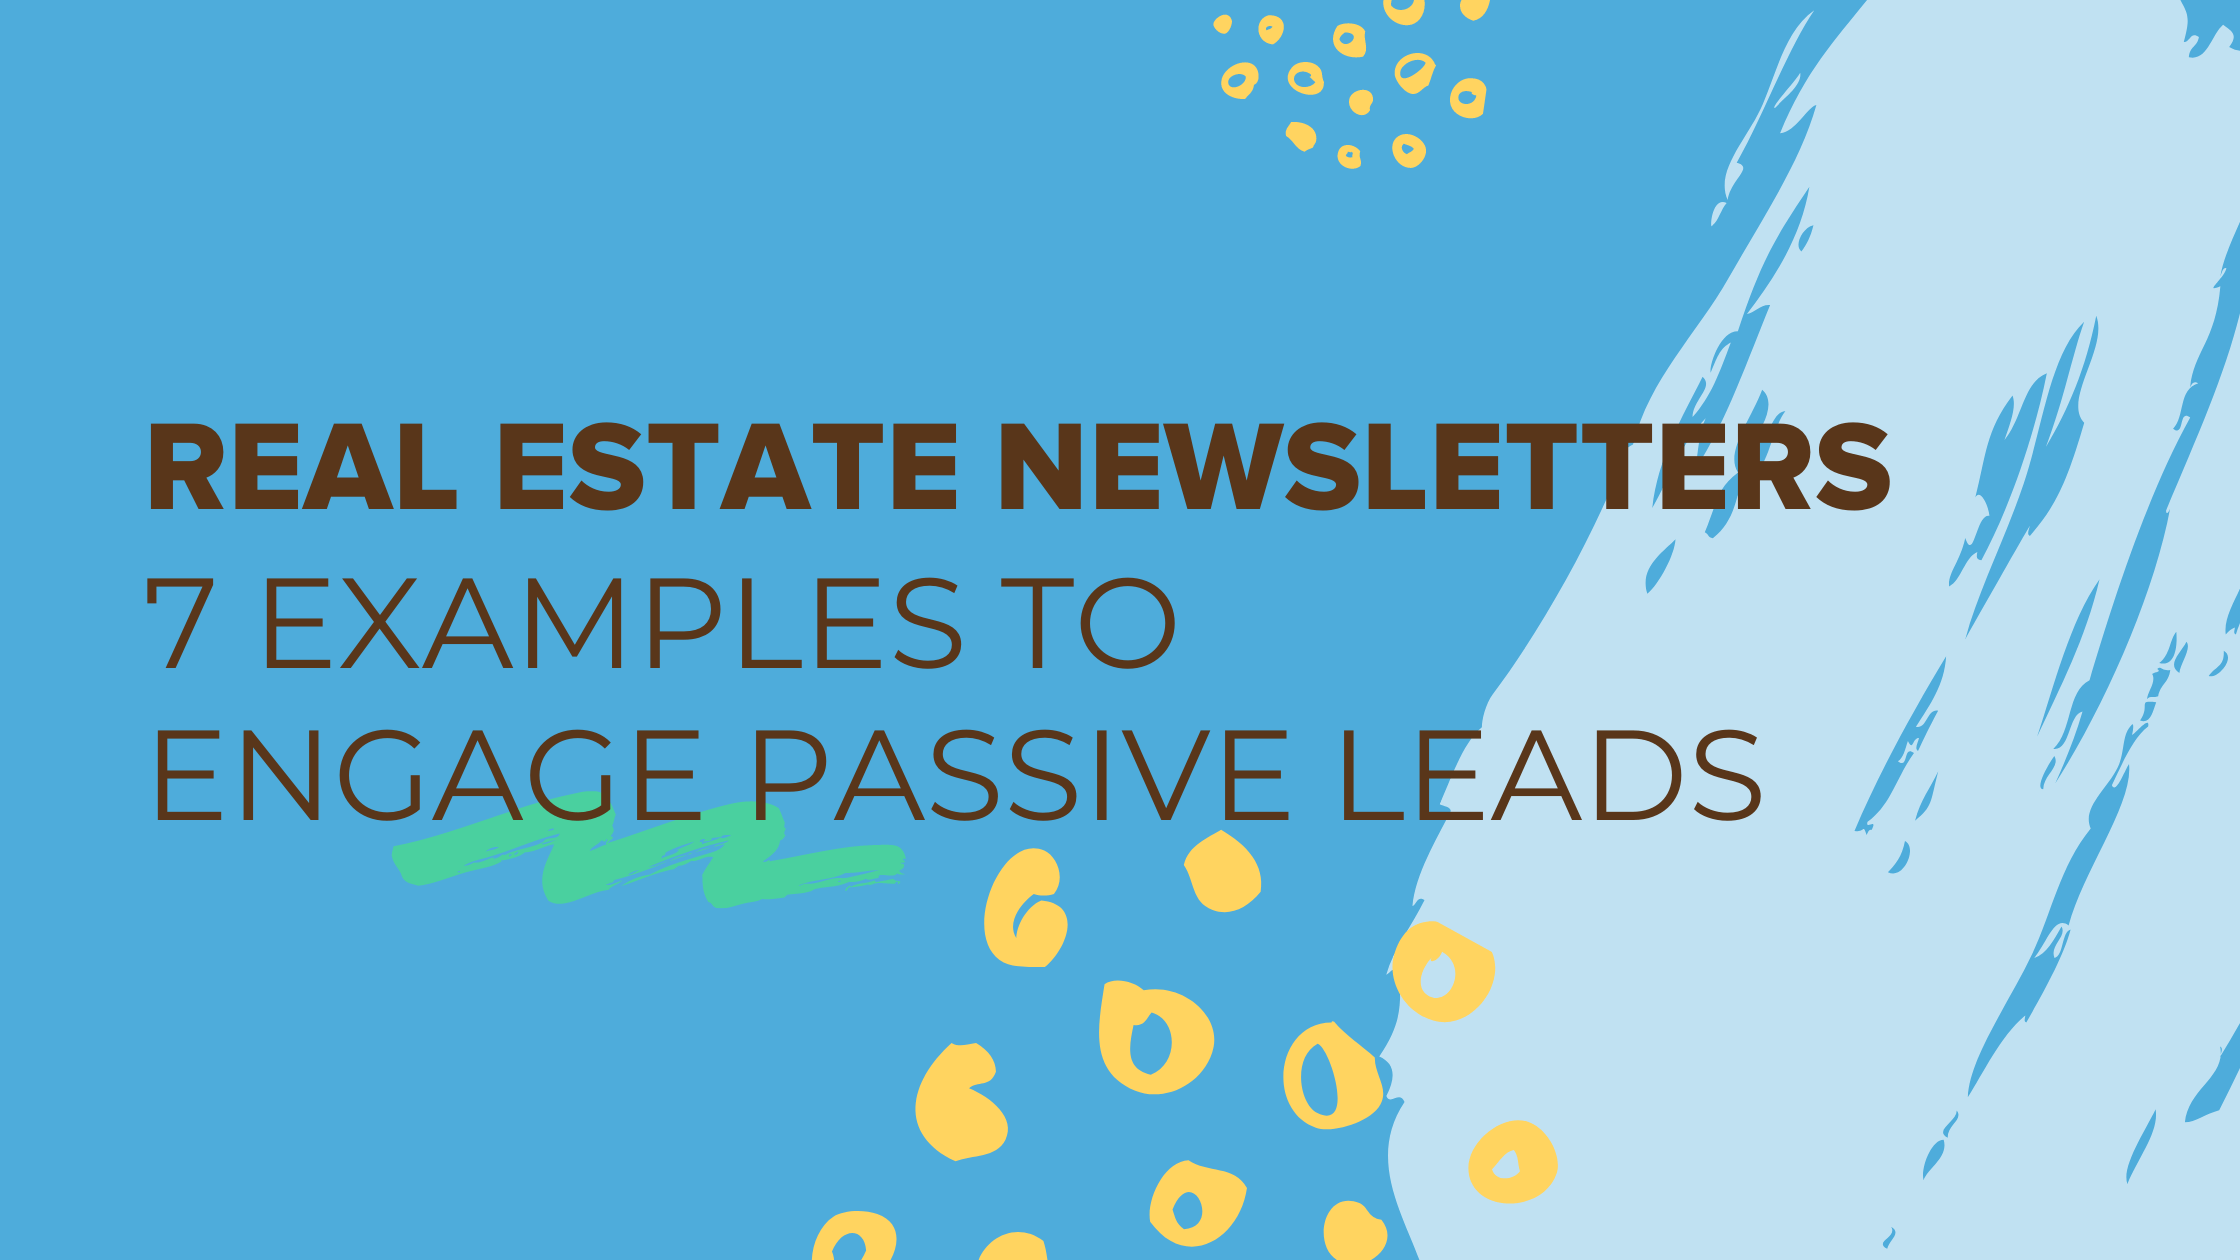 Real Estate Newsletters: 7 Examples To Engage Passive Leads